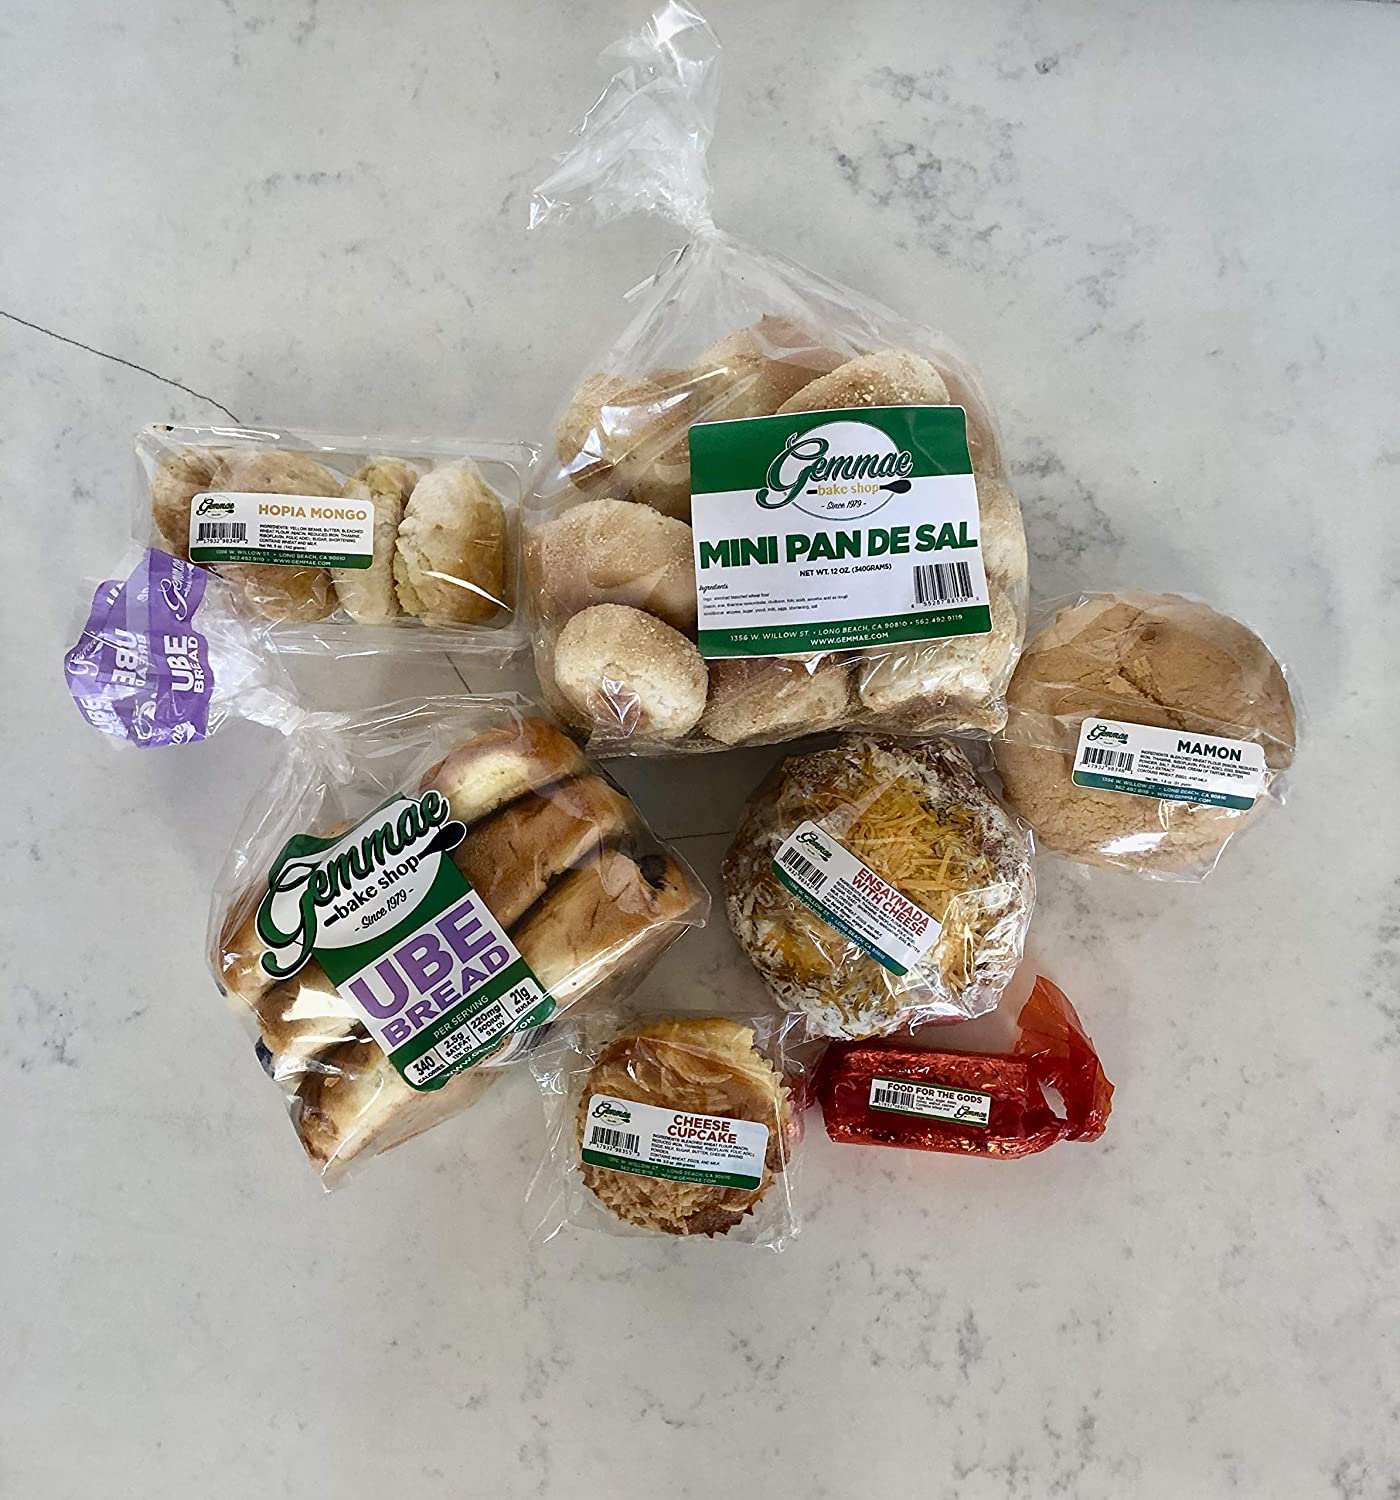 Gemmae Bake Shop - Filipino Bread & Pastry Favorites - Includes: Pandesal, Ensaymada, Ube Bread, Hopia, Cheese Cupcake, Food for the Gods